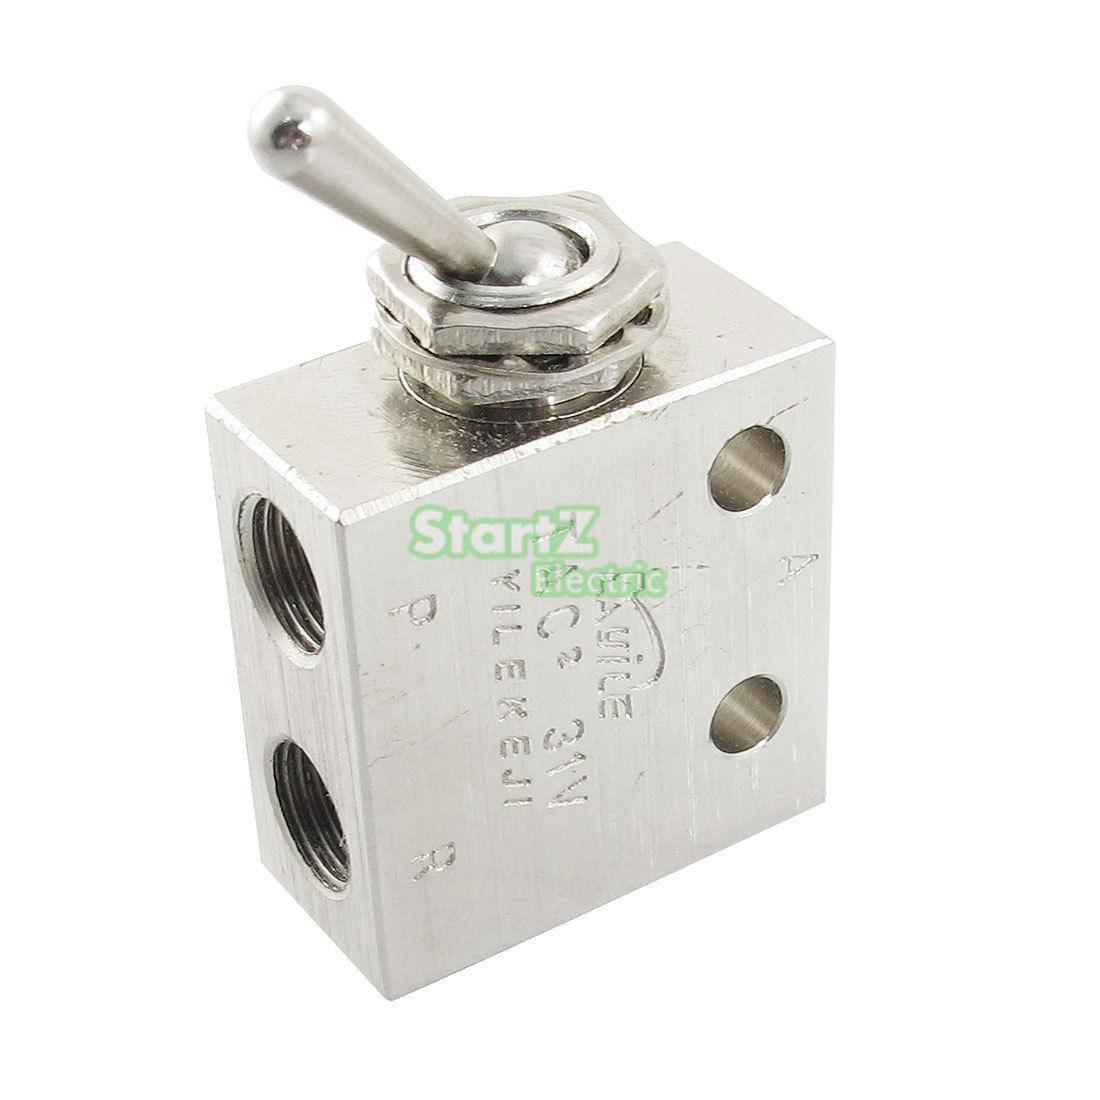 1/8PT Thread 2 Position 3 Way Rectangle Mechanical Air Pneumatic Valve  TAC2-31V tv 3s pneumatic toggle valve 5mm thread 2 position 3 way mechanical air pneumatic valve